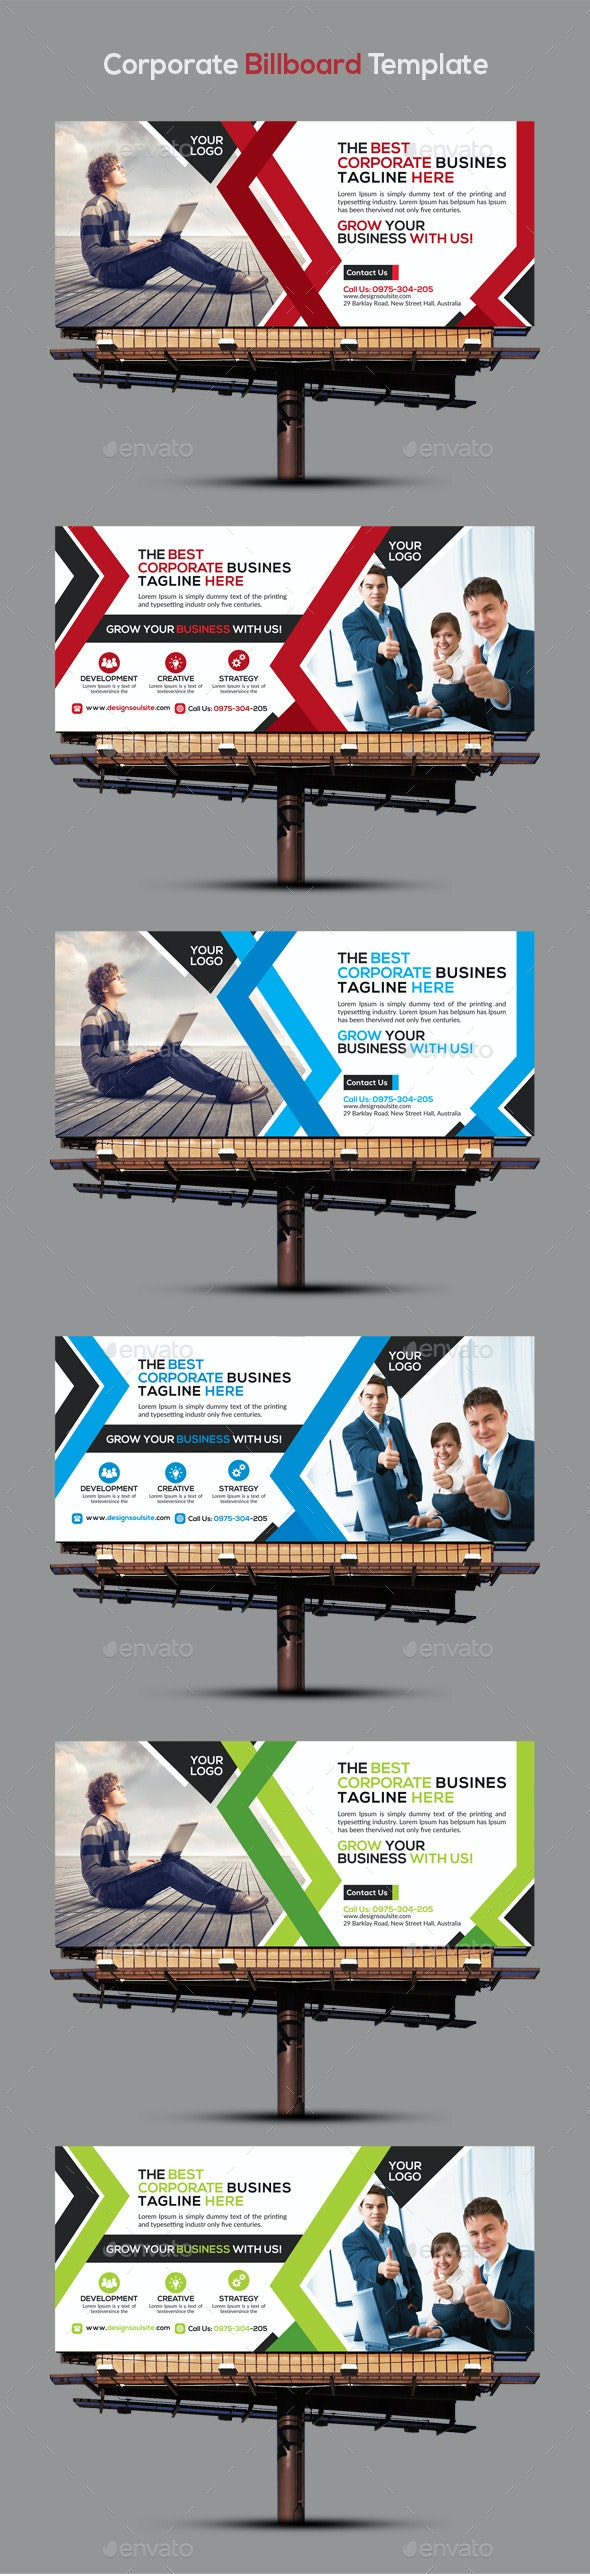 Corporate Billboard Template - Signage Print Templates